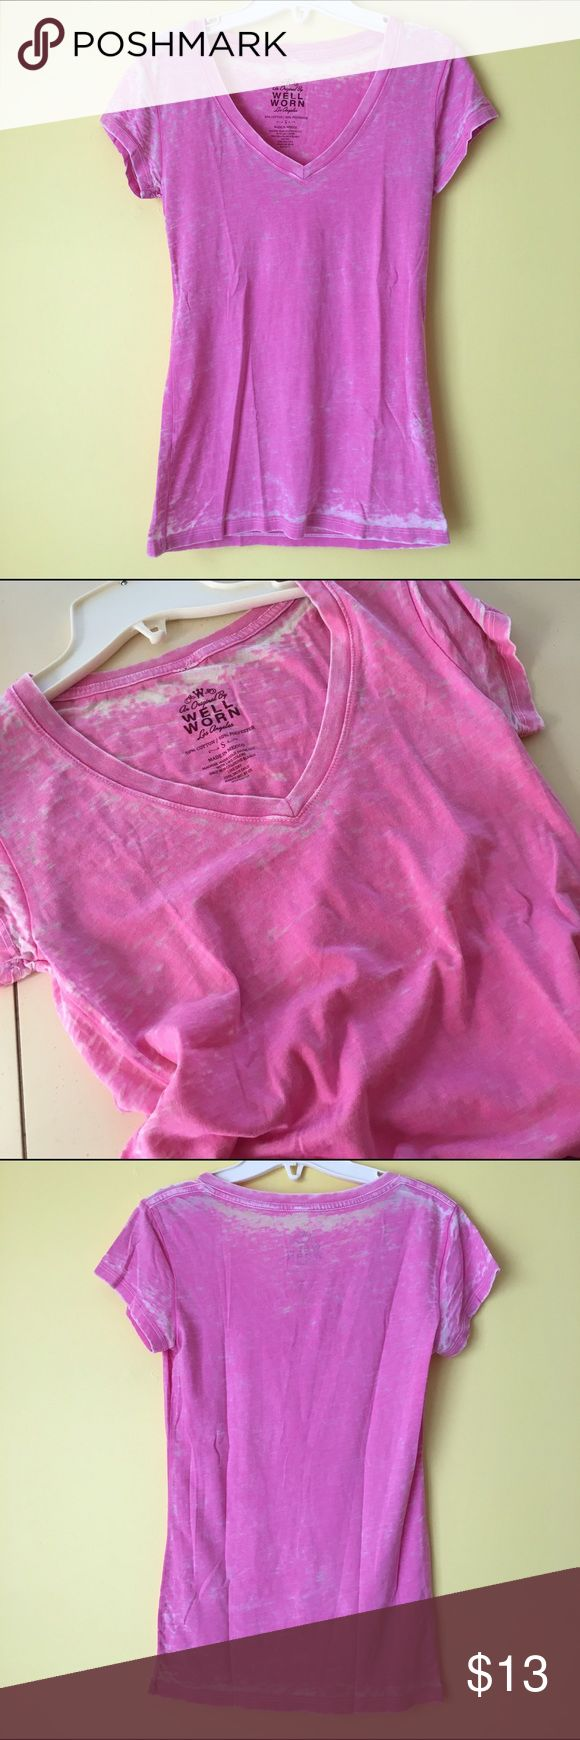 "Distressed Acid Burnout Goth Punk Pink Tee Shirt ! SALE!Distressed Burnout Sheer See-through Vtg Vintage 90s Style Far From Basic Bright Neon Bubblegum Candy Princess Pink Short Sleeve V Neck Fitted Tee Shirt Top  Brand new  NO flaws. ""An Original By Well Worn Los Angeles"". Women's size Small. Could also fit an XS. 50/50 Cotton-Poly blend. ❣ SO soft & comfy!  Has that ""well-loved"", ""worn-in"" feel to it! Lightweight & feels like a dream. ☁️ Sheer. You'll be slaying in this perf top! NO holds…"